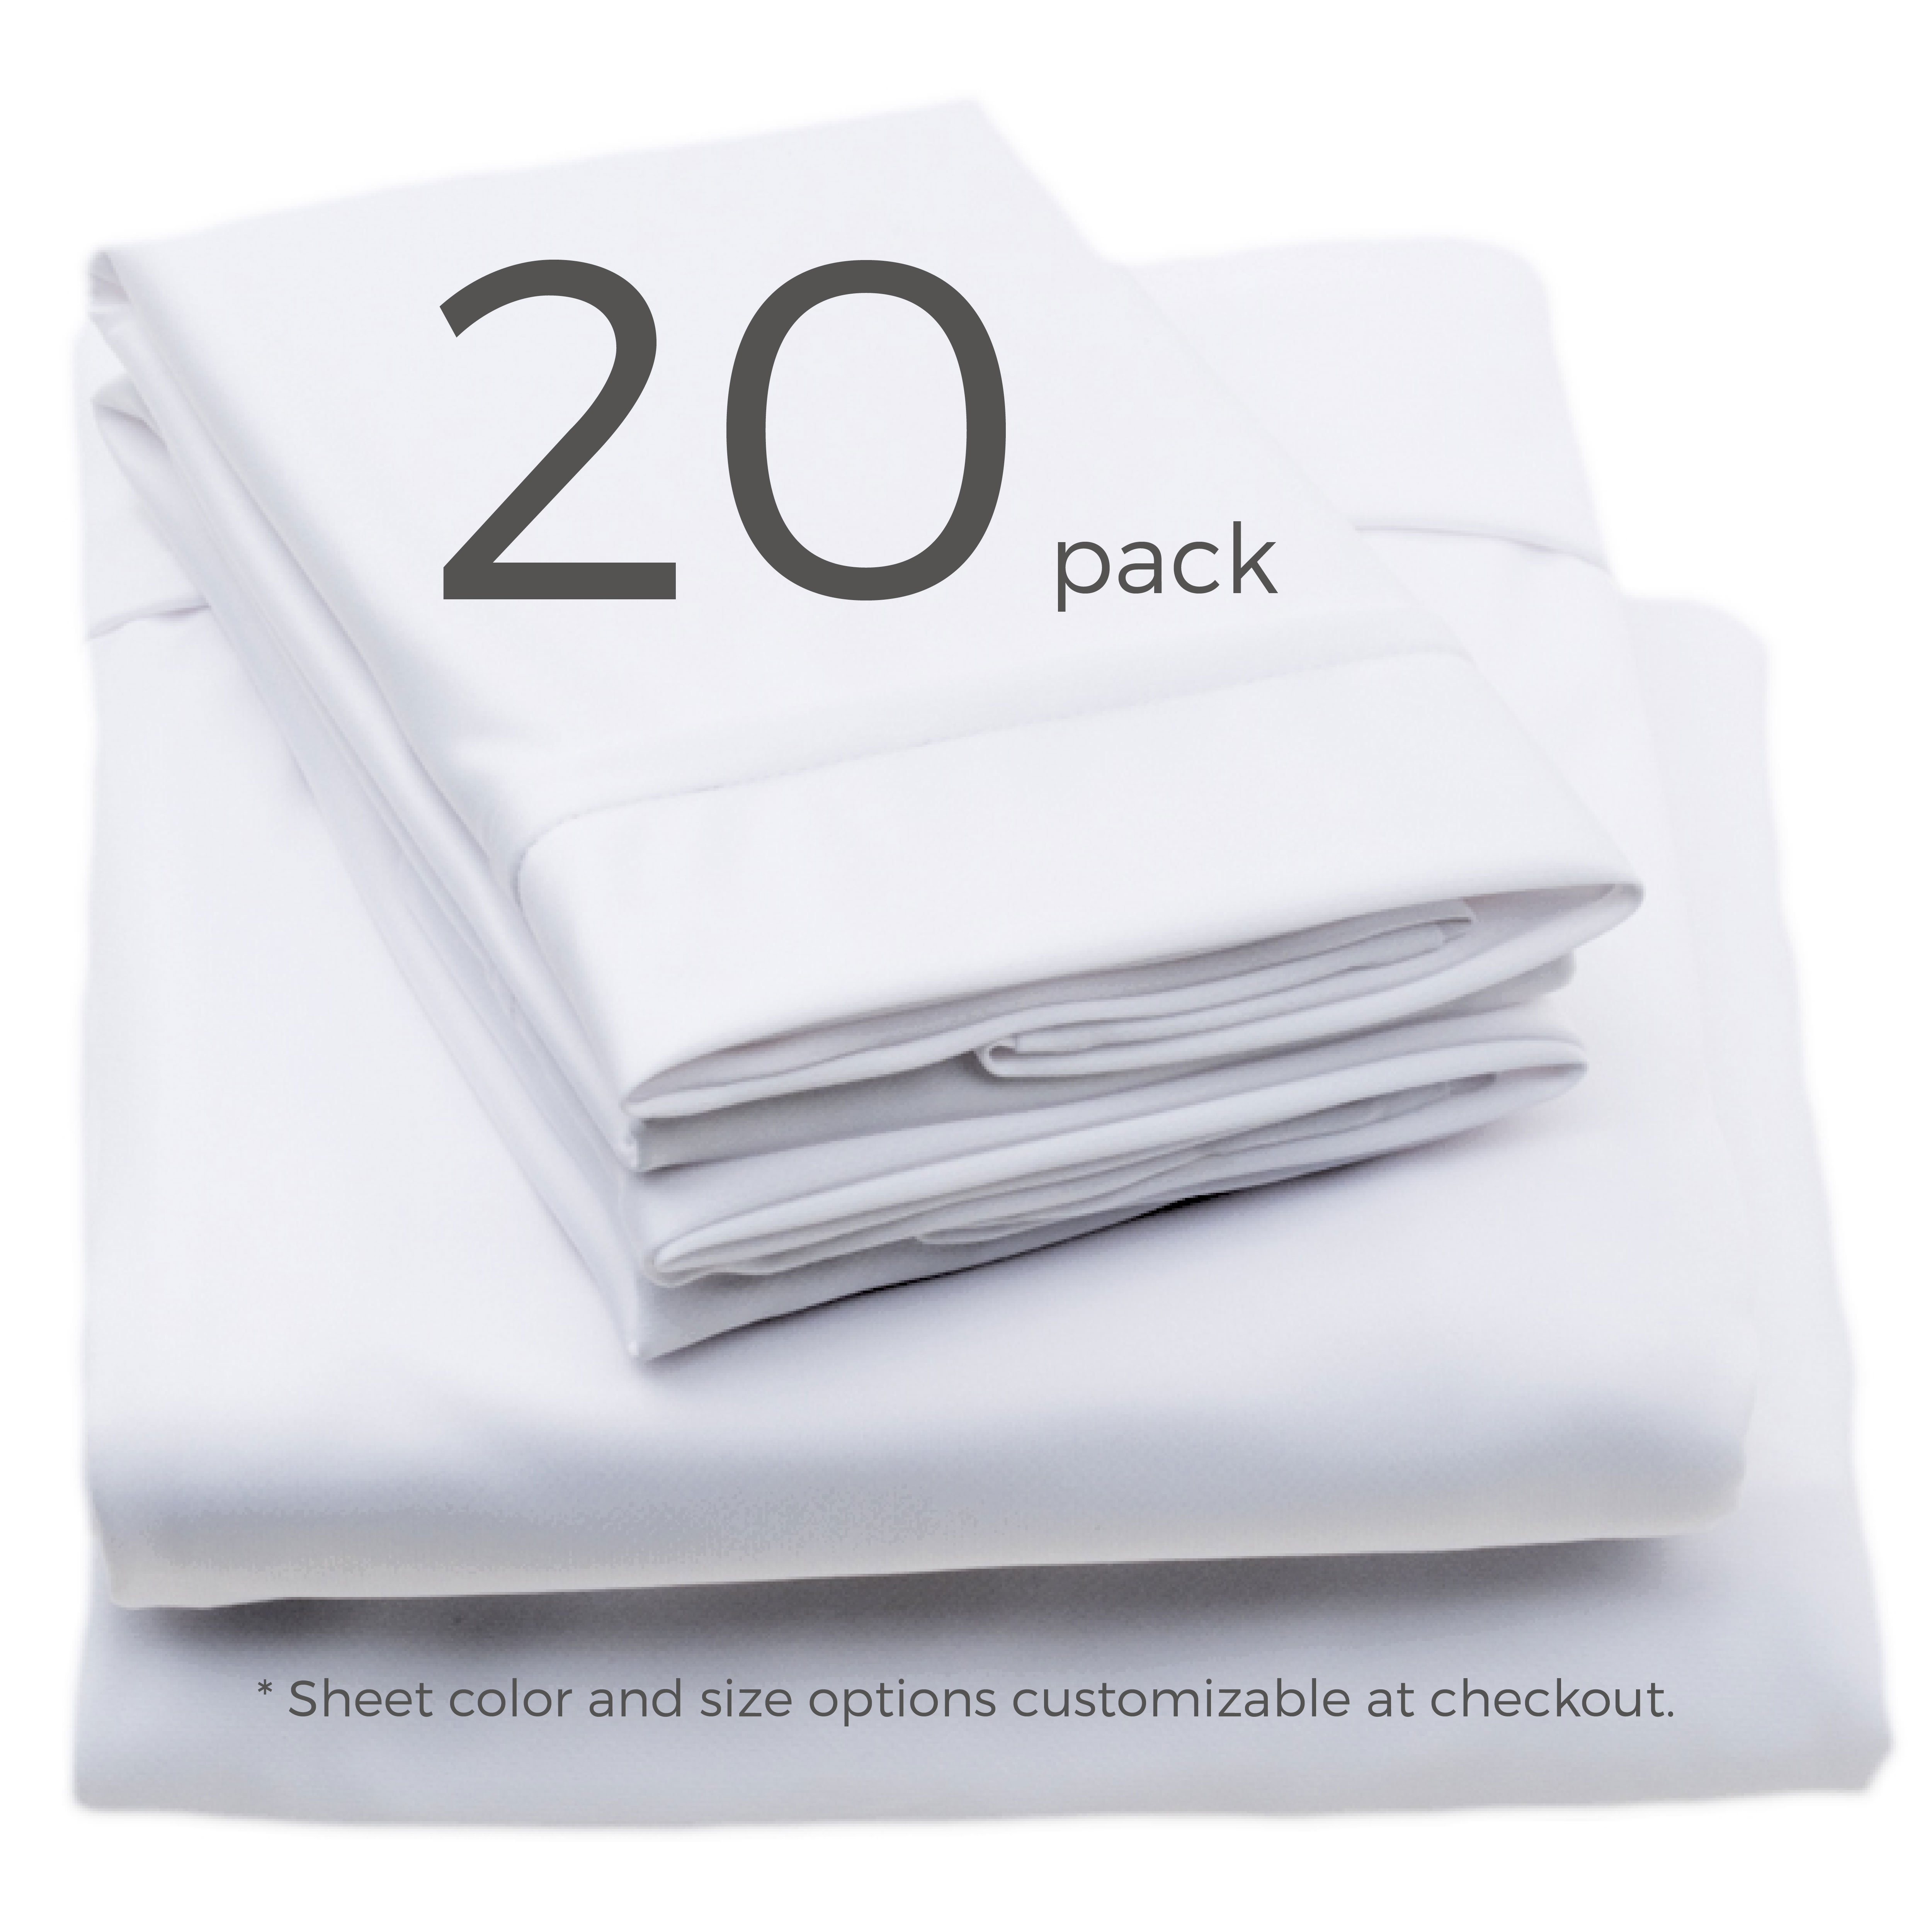 20 pack sheet color and size options customizable at checkout